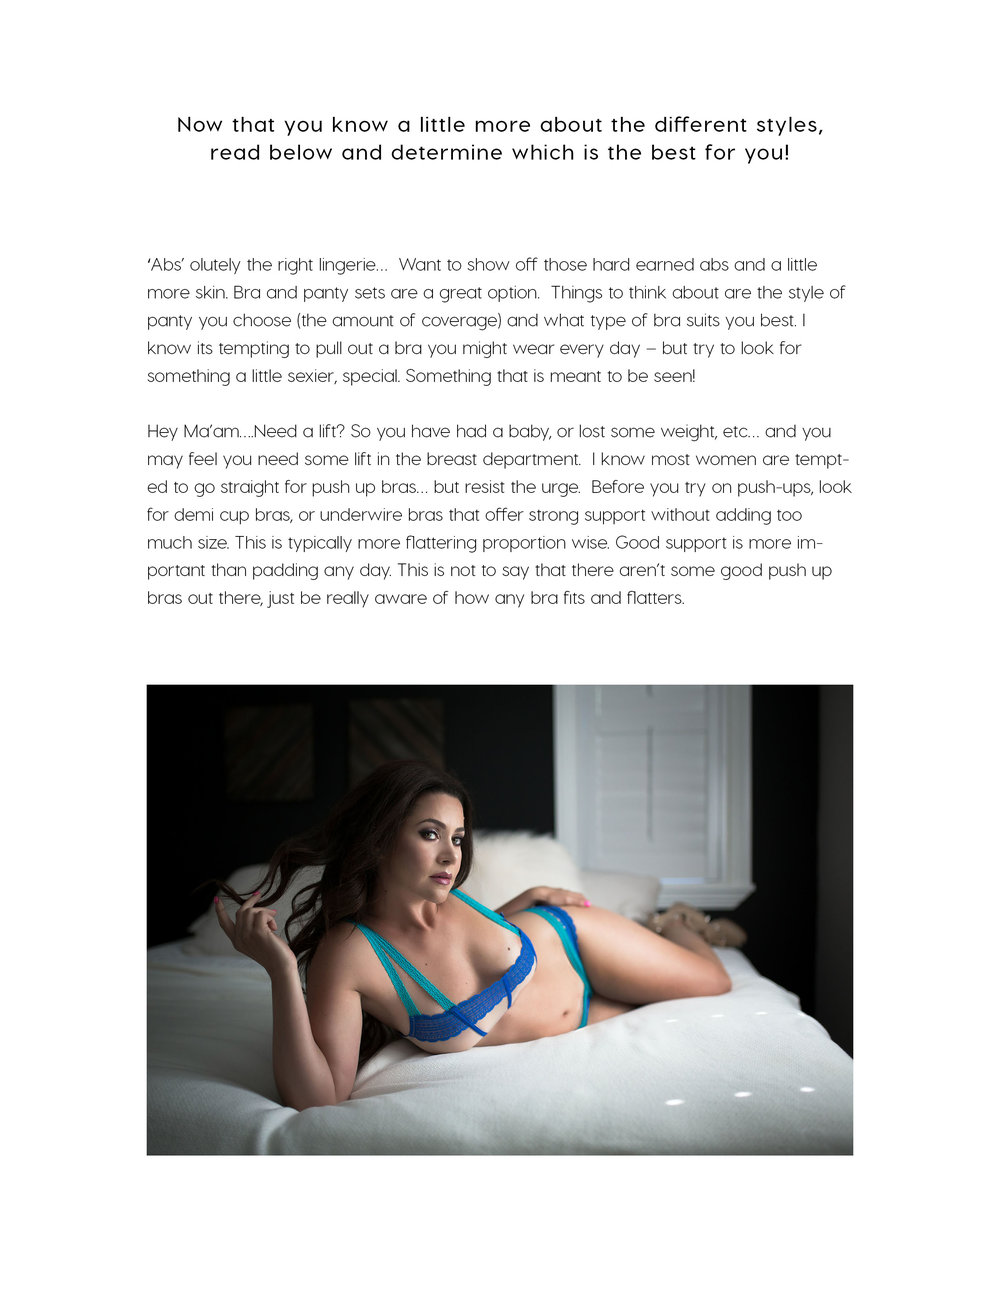 MandyMerinoPhotography_LingerieGuide_Page4.jpg